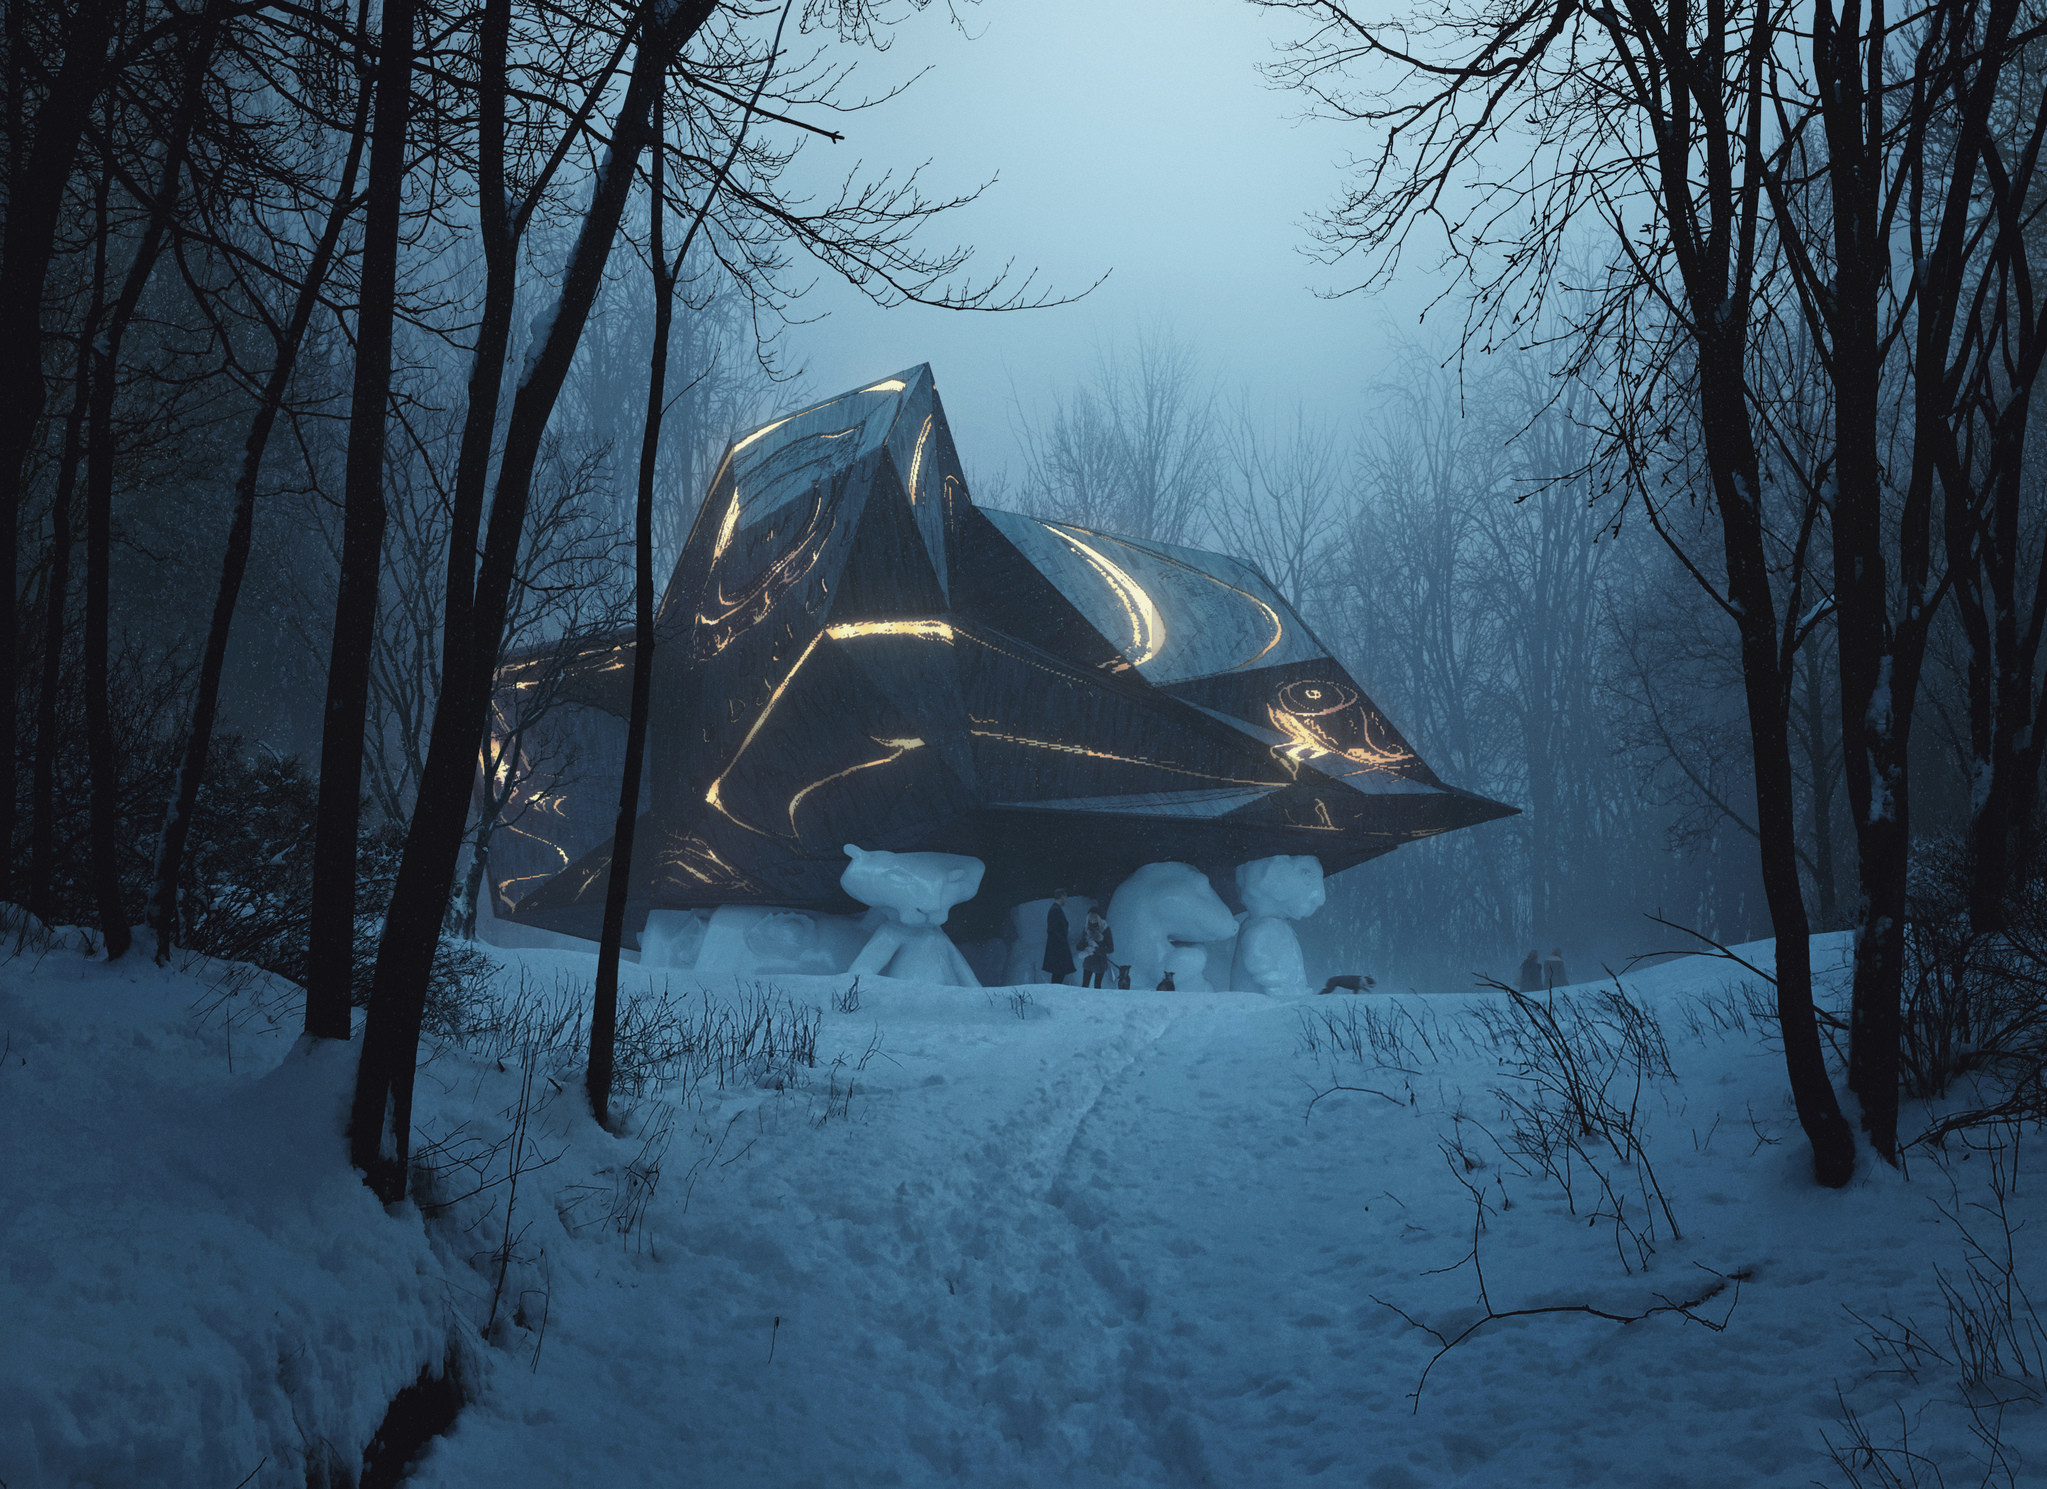 A House to Die In by Snøhetta and Bjarne Melgaard. Image courtesy of MIR and Snøhetta